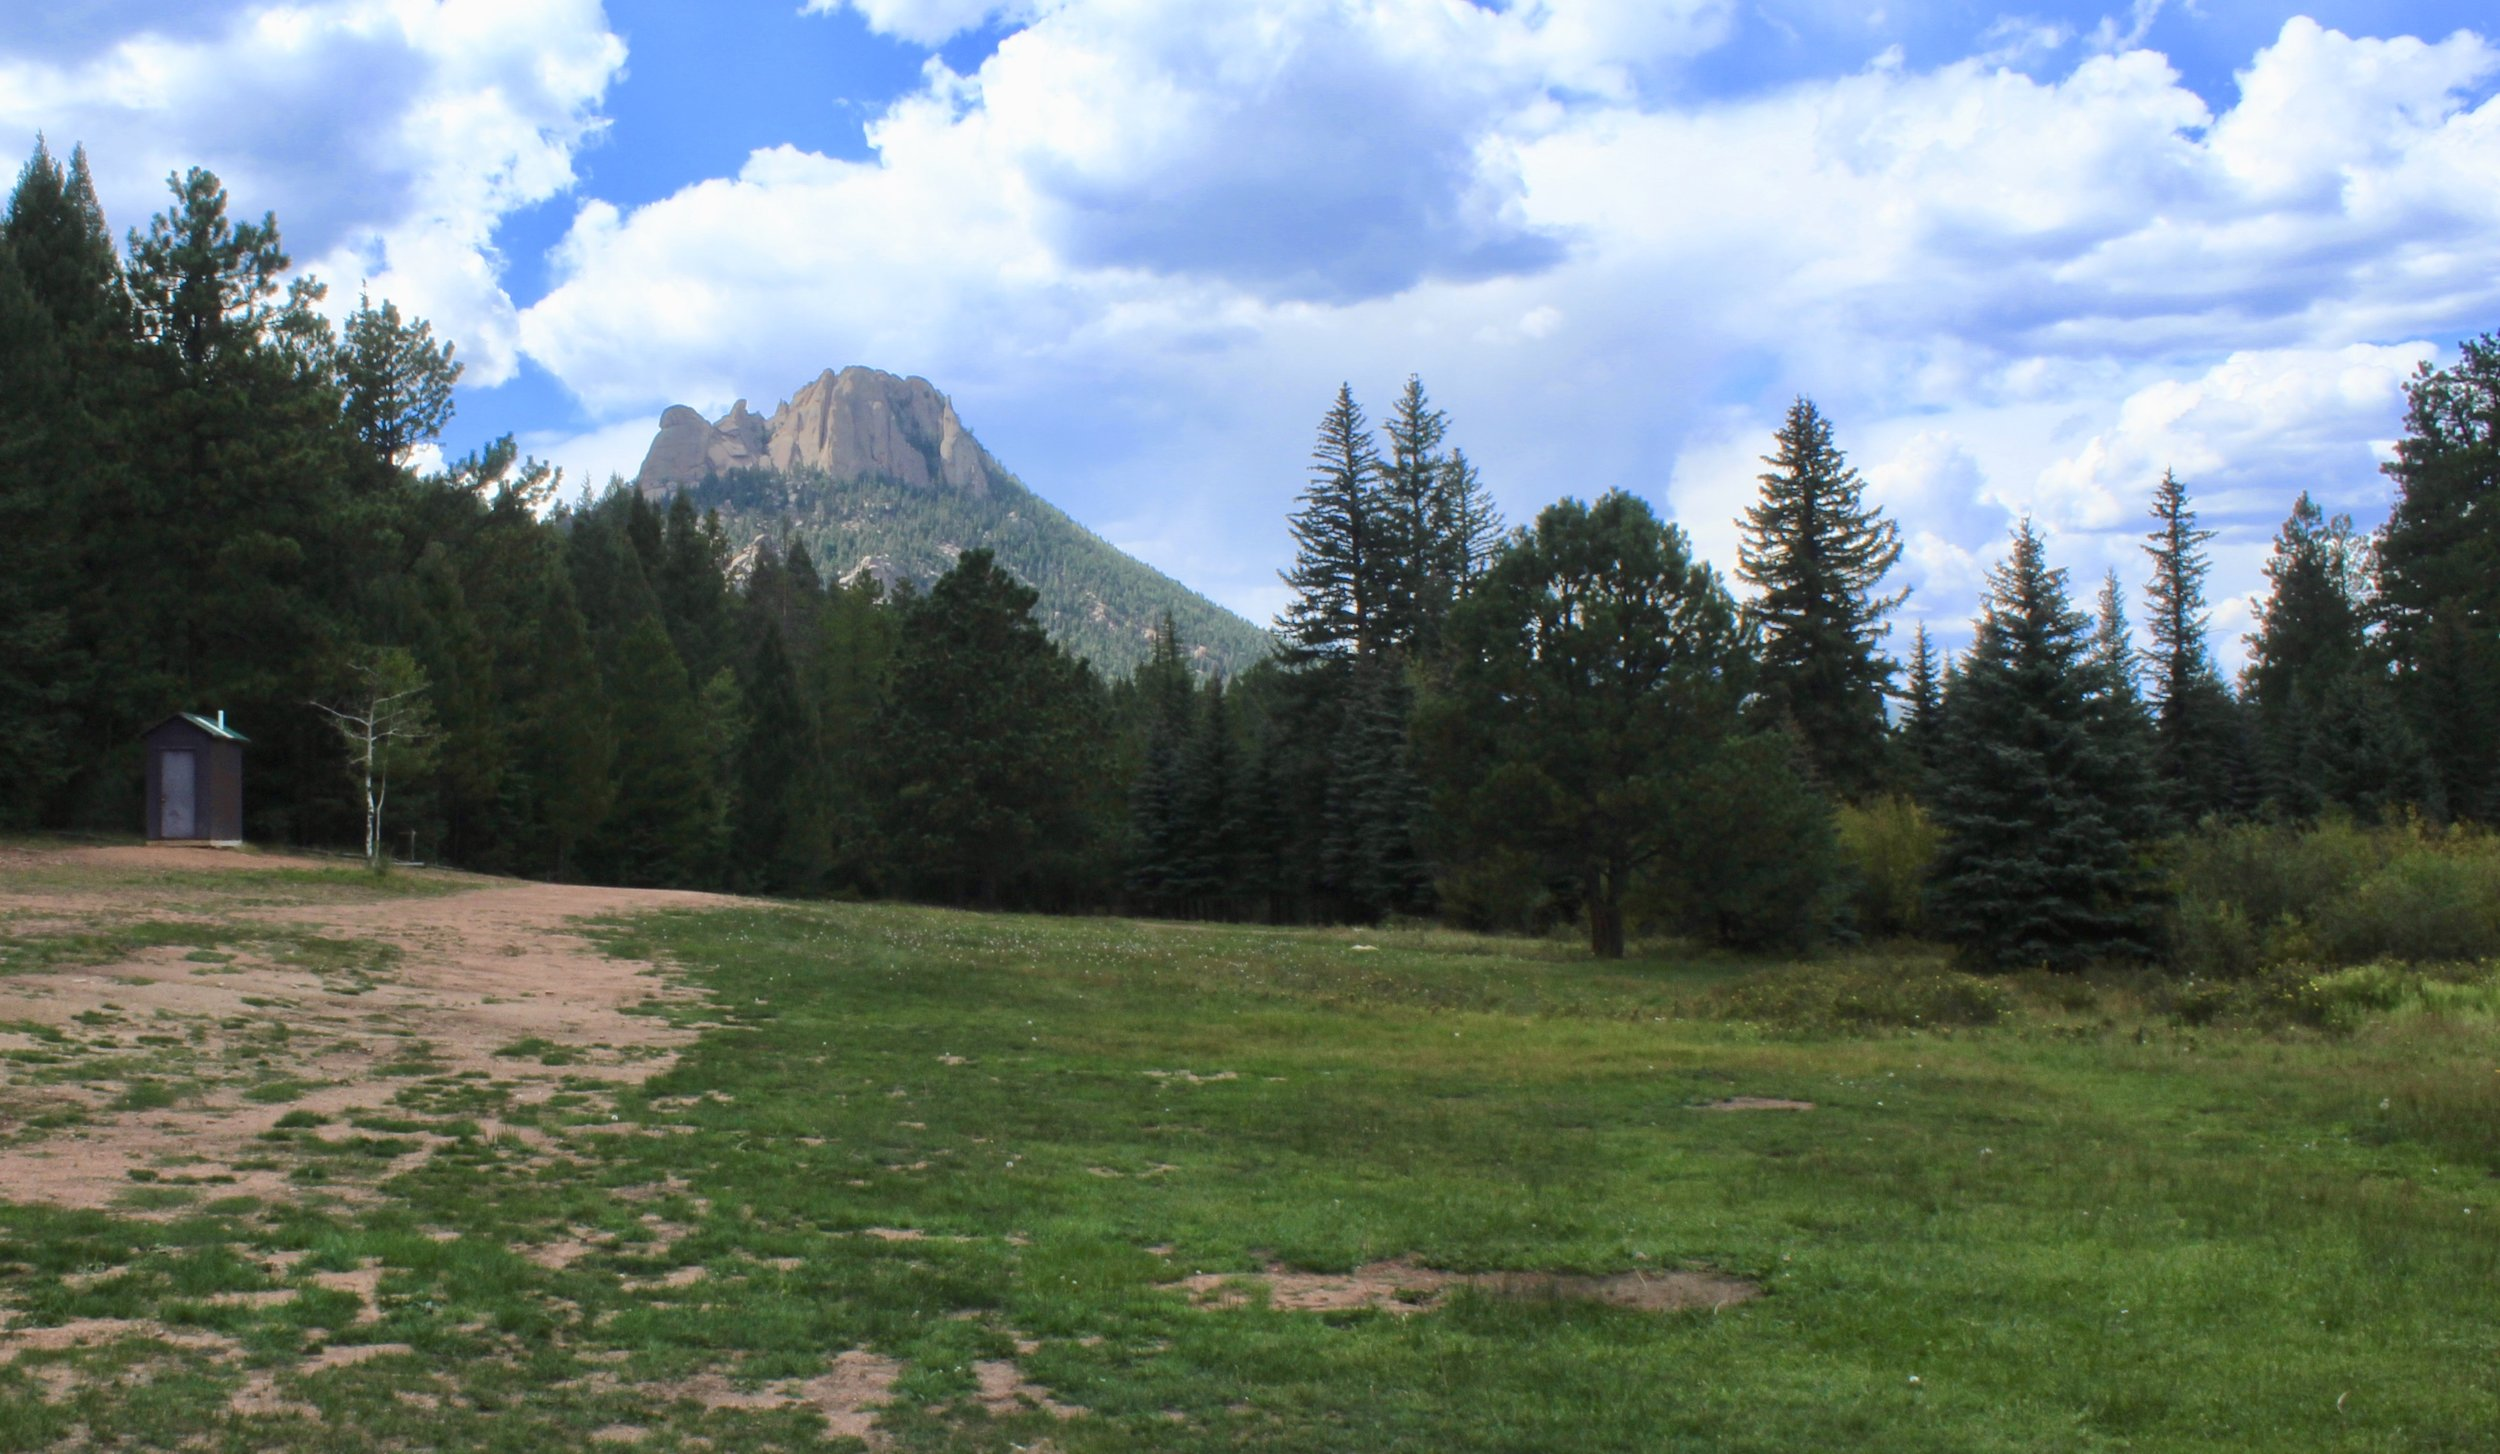 View of the Castle from the large camping area in Royal Elk Meadow.